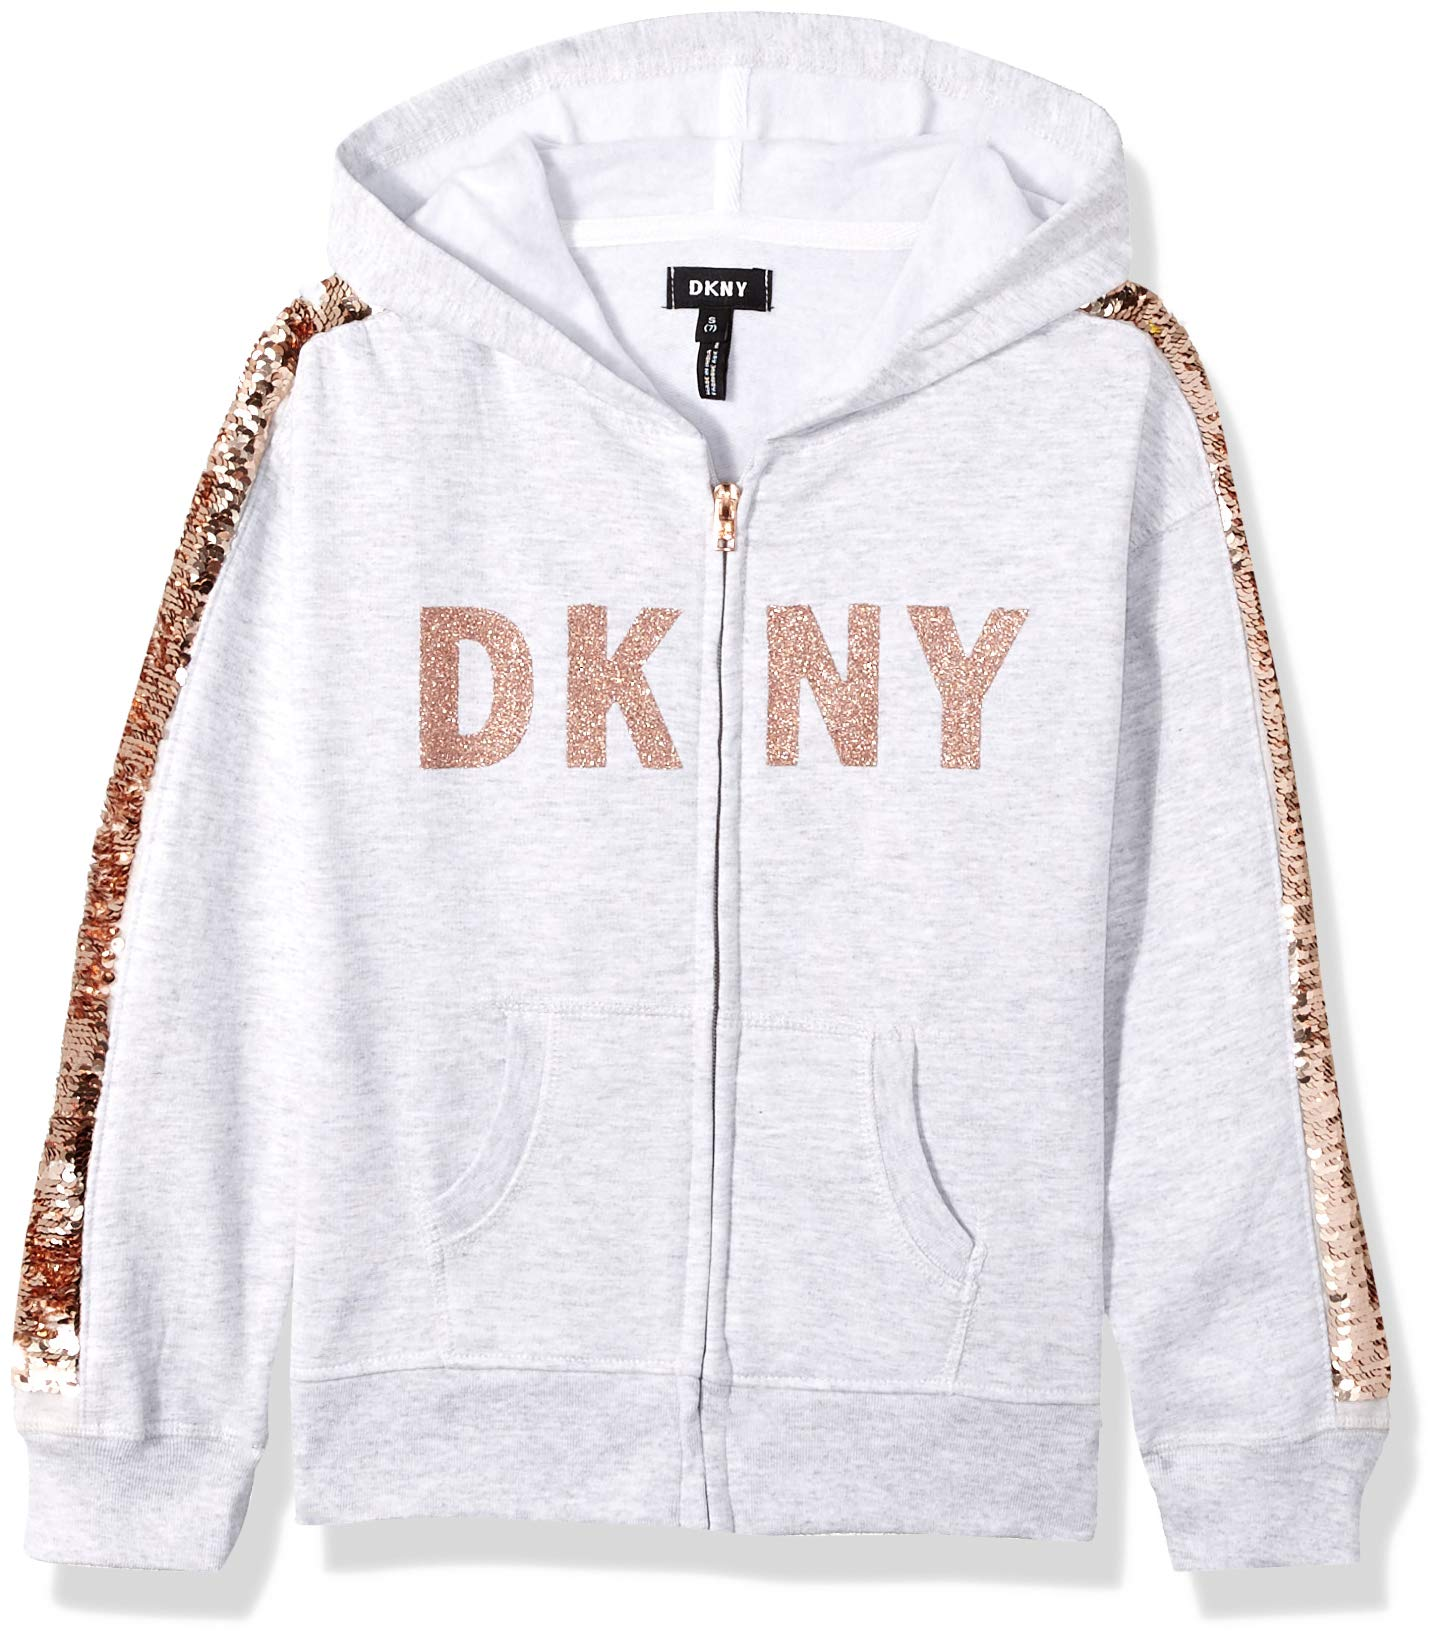 DKNY Girls' Big Sequin Zip Up Hoodie, Oatmeal Heather, 14/16